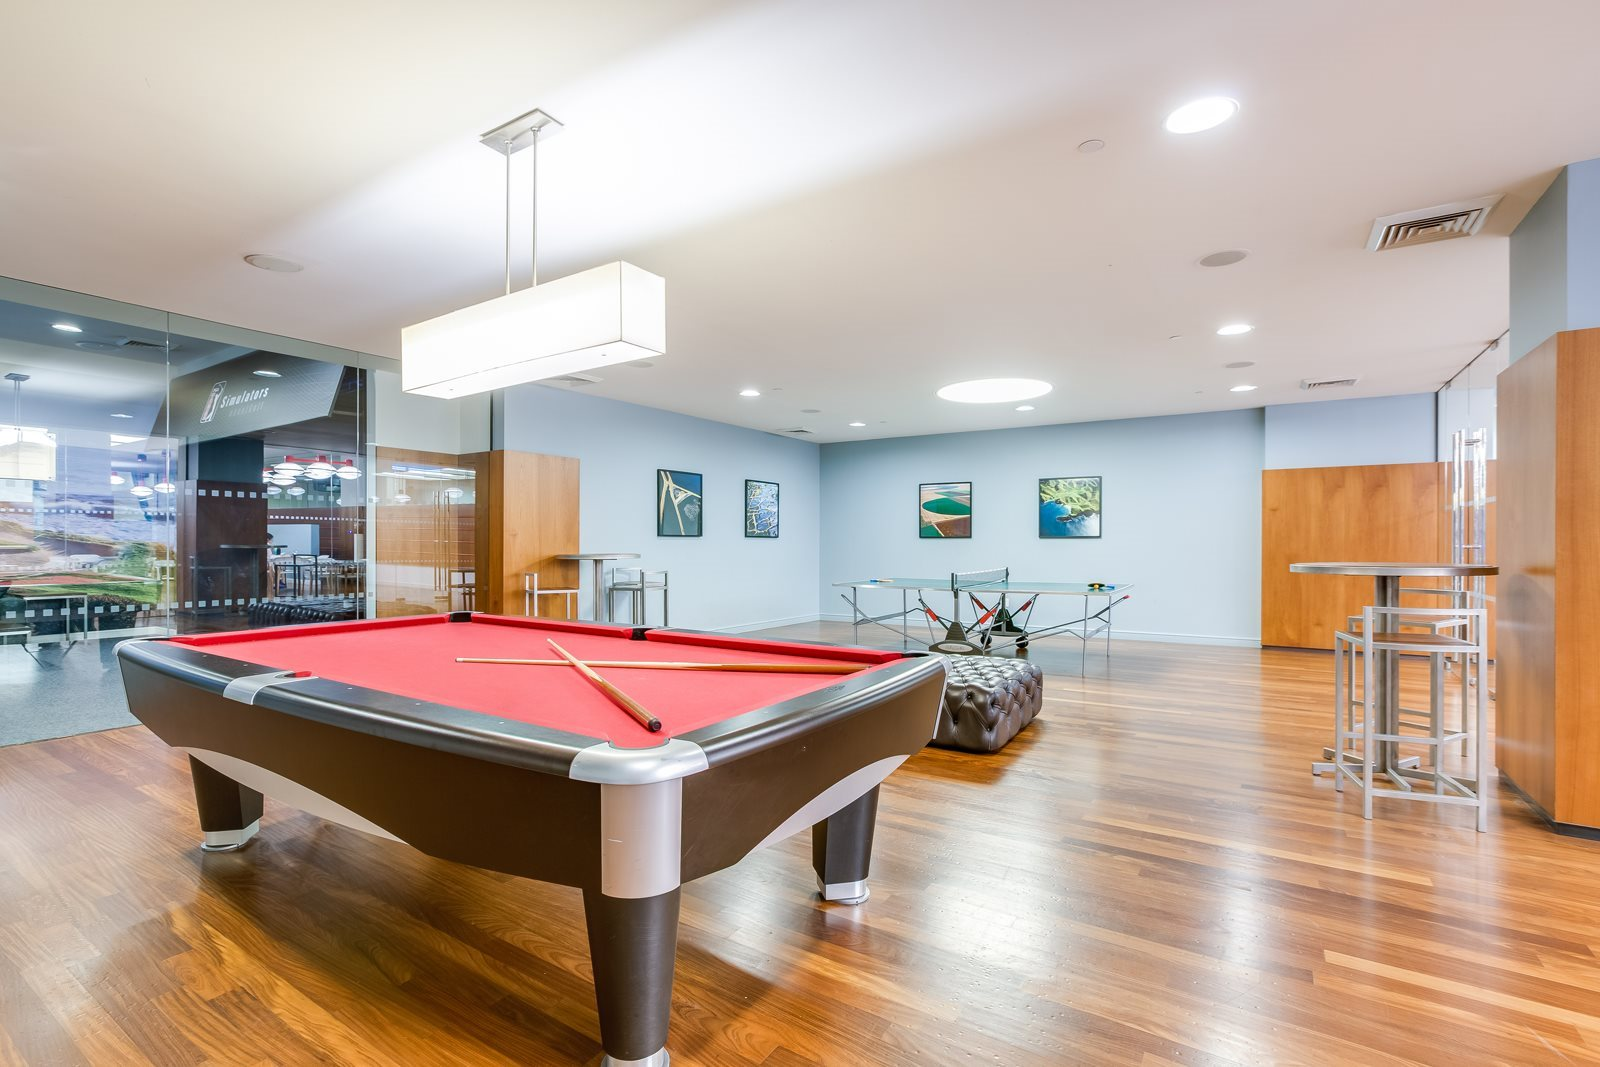 Game room with Billiards Table at The Ashley Upper West Side Apartments